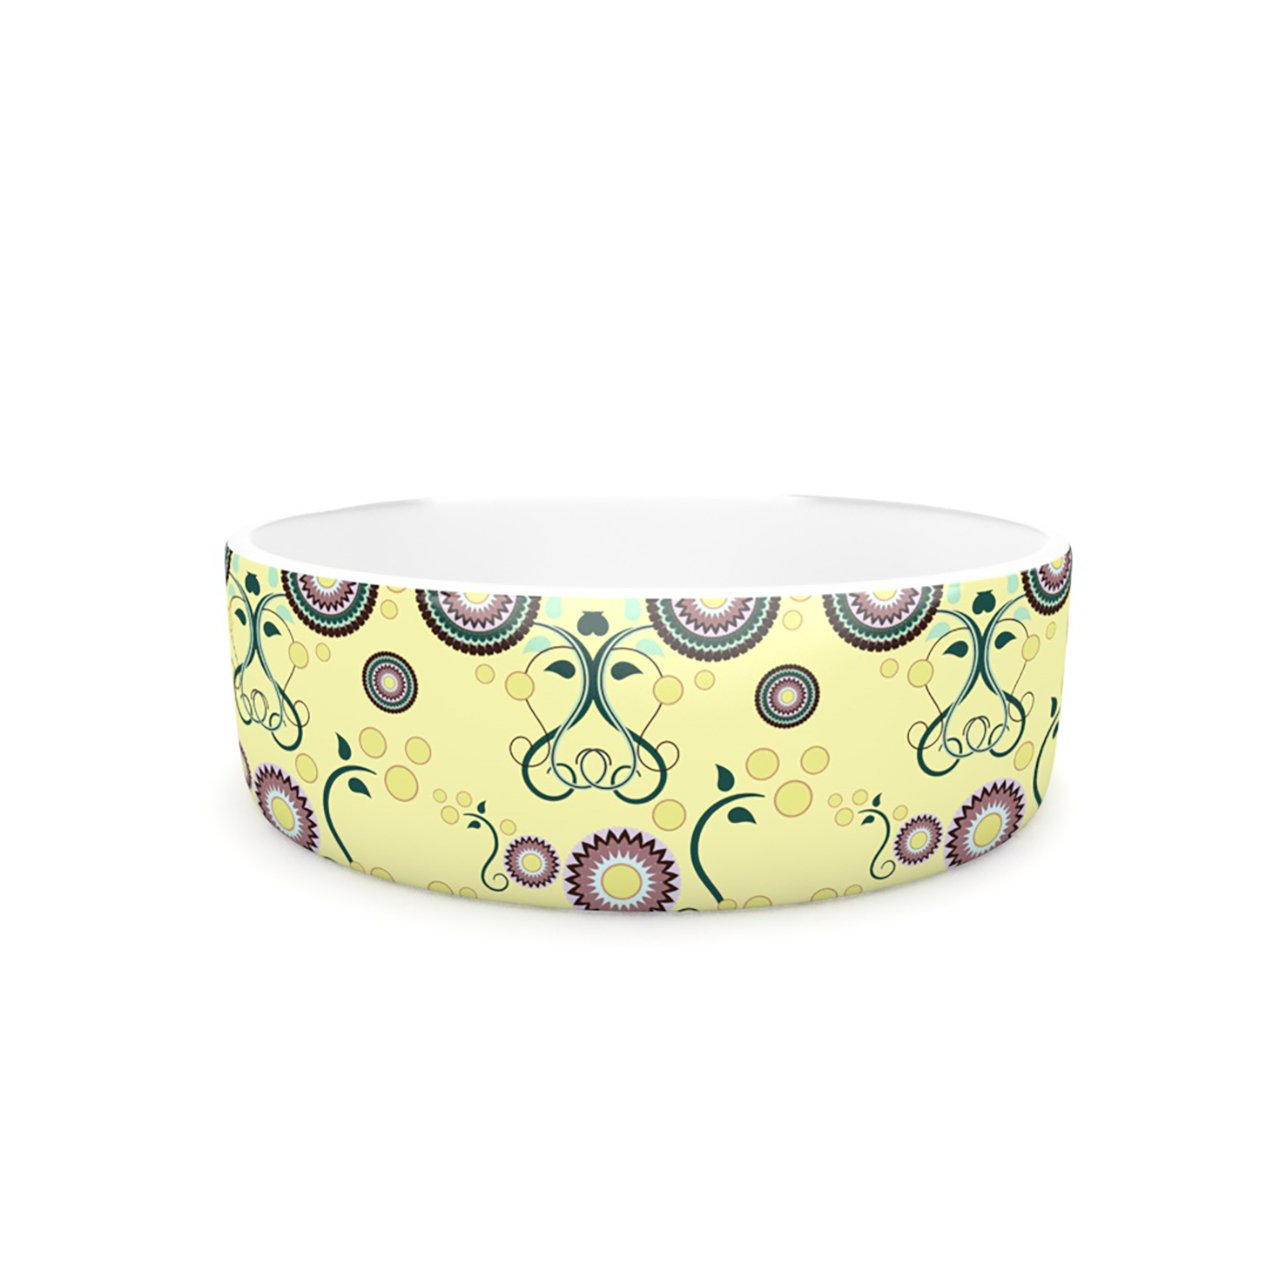 Kess InHouse Mydeas Spring Florals Pet Bowl, 7-Inch, Yellow Multicolor